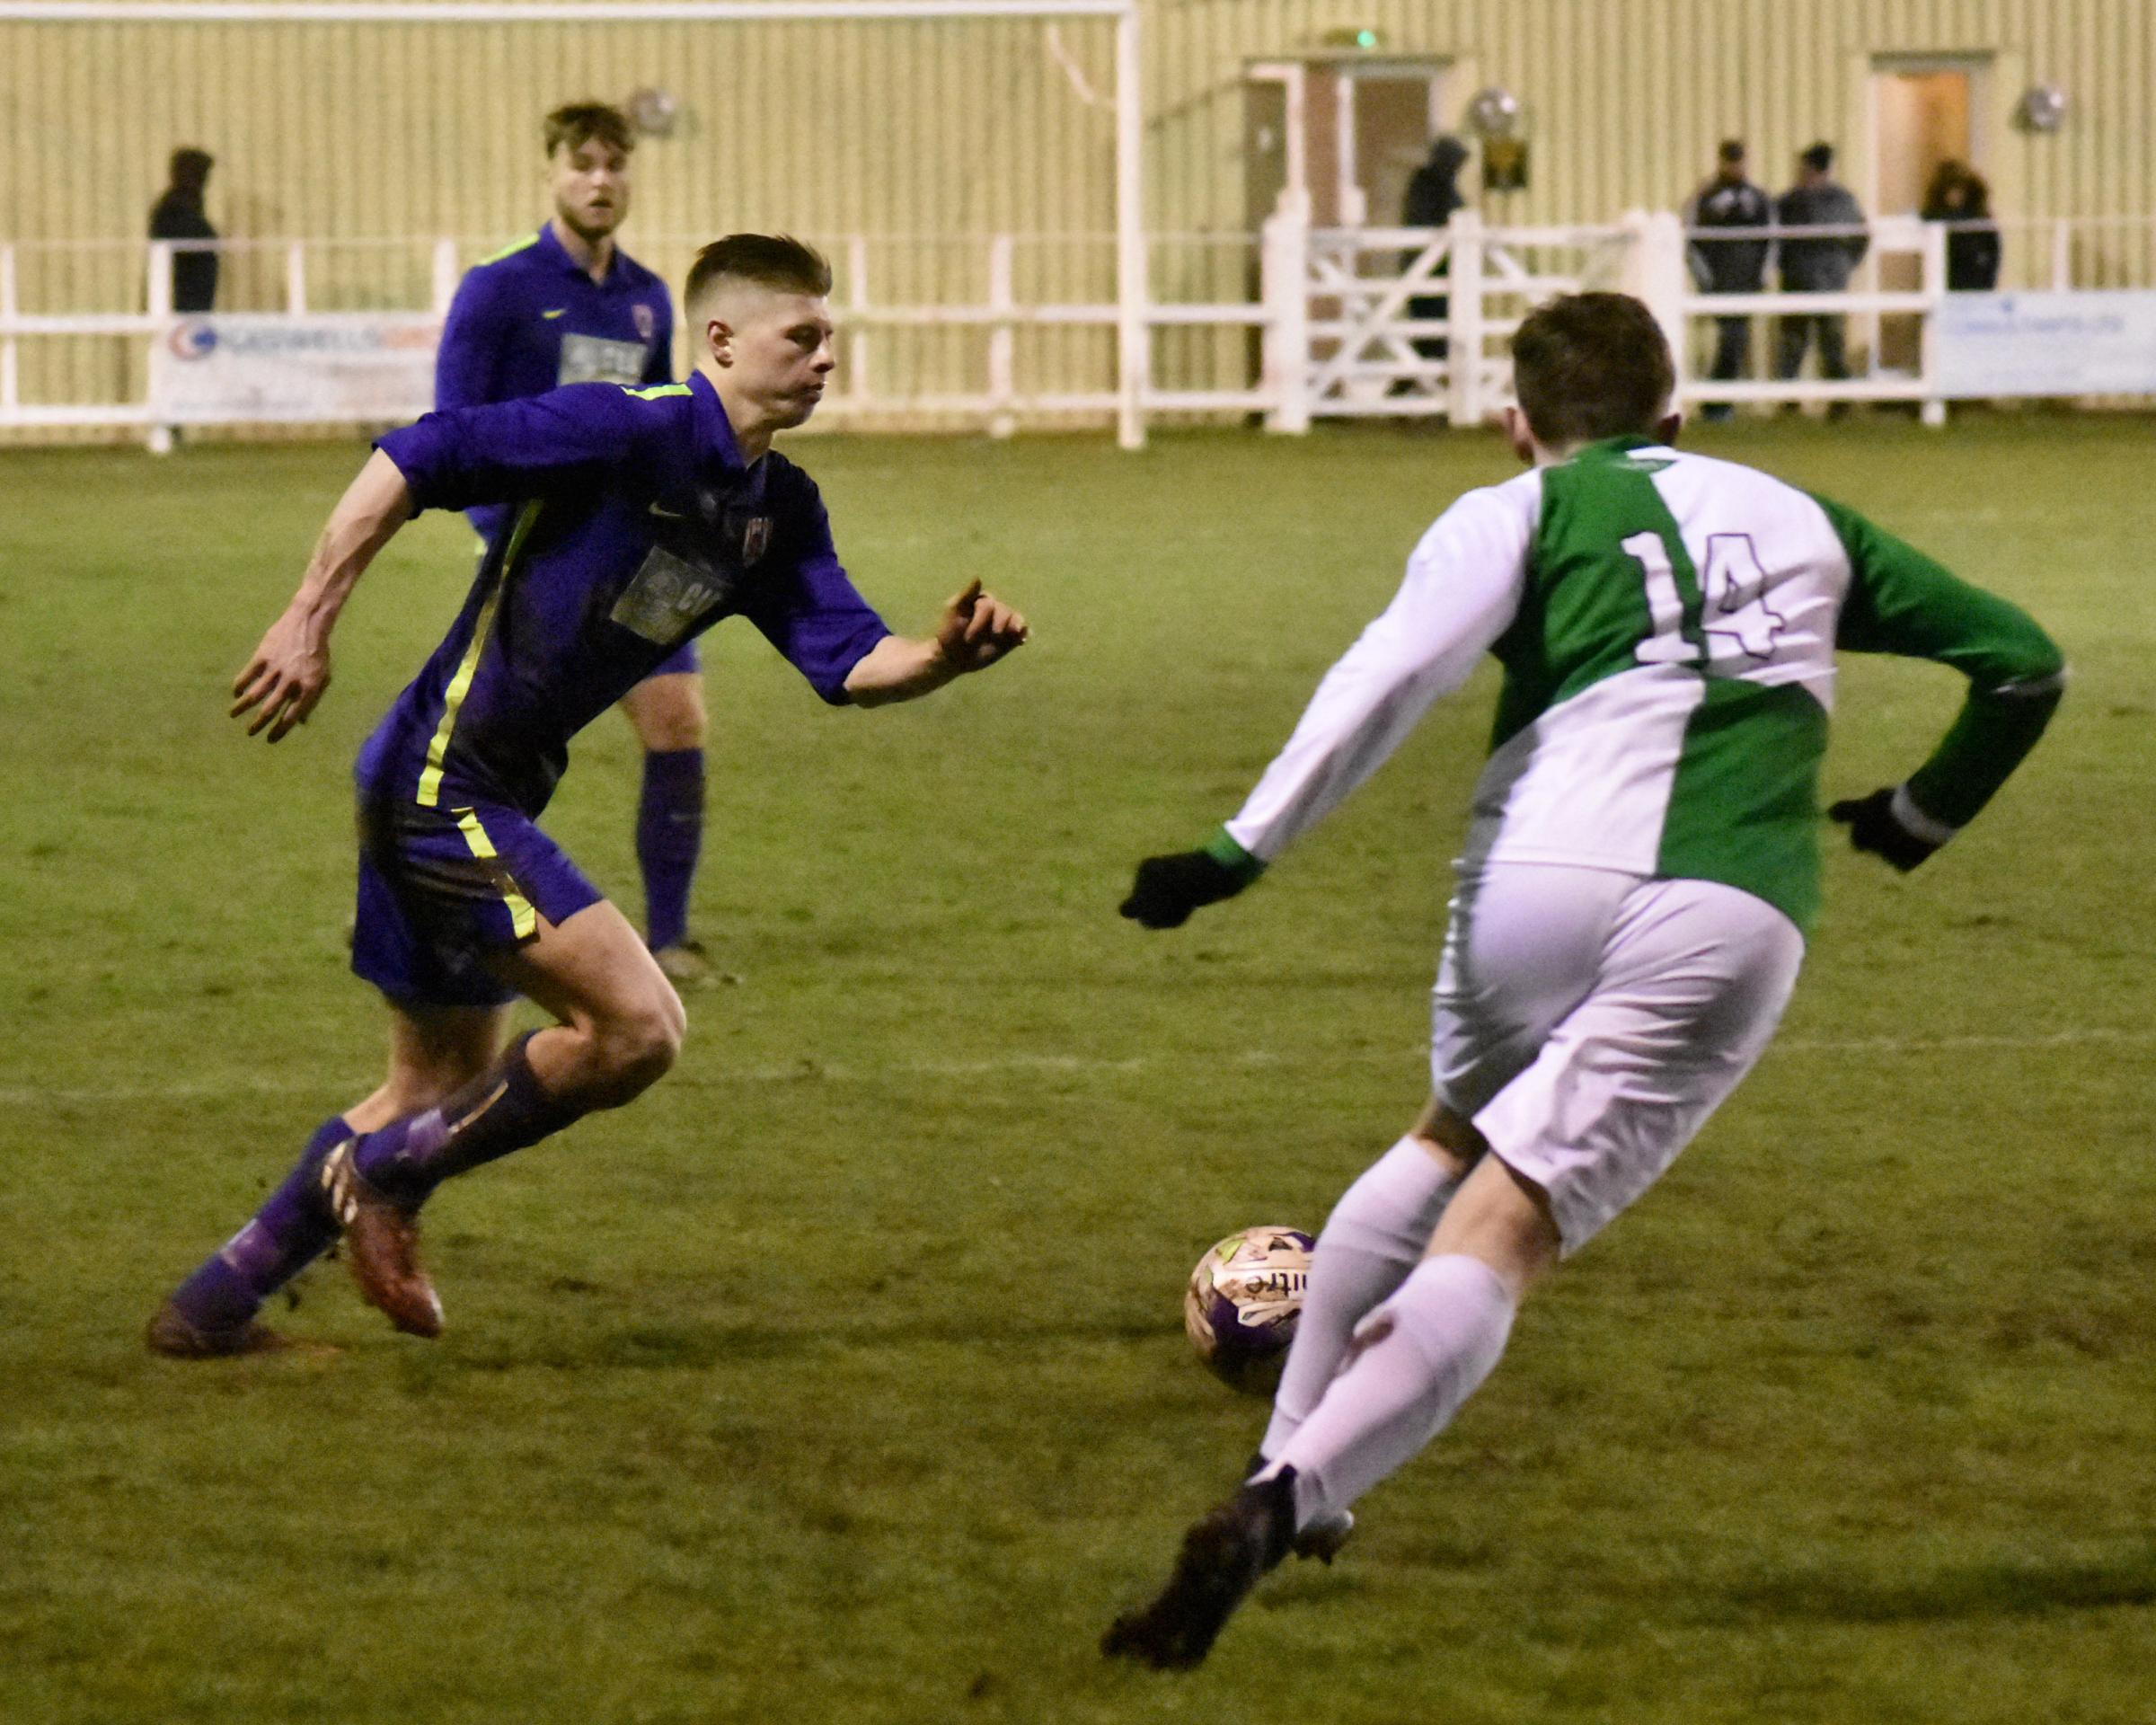 Bradley Mills shows the defender in full flight in competition with a Billingham attacker